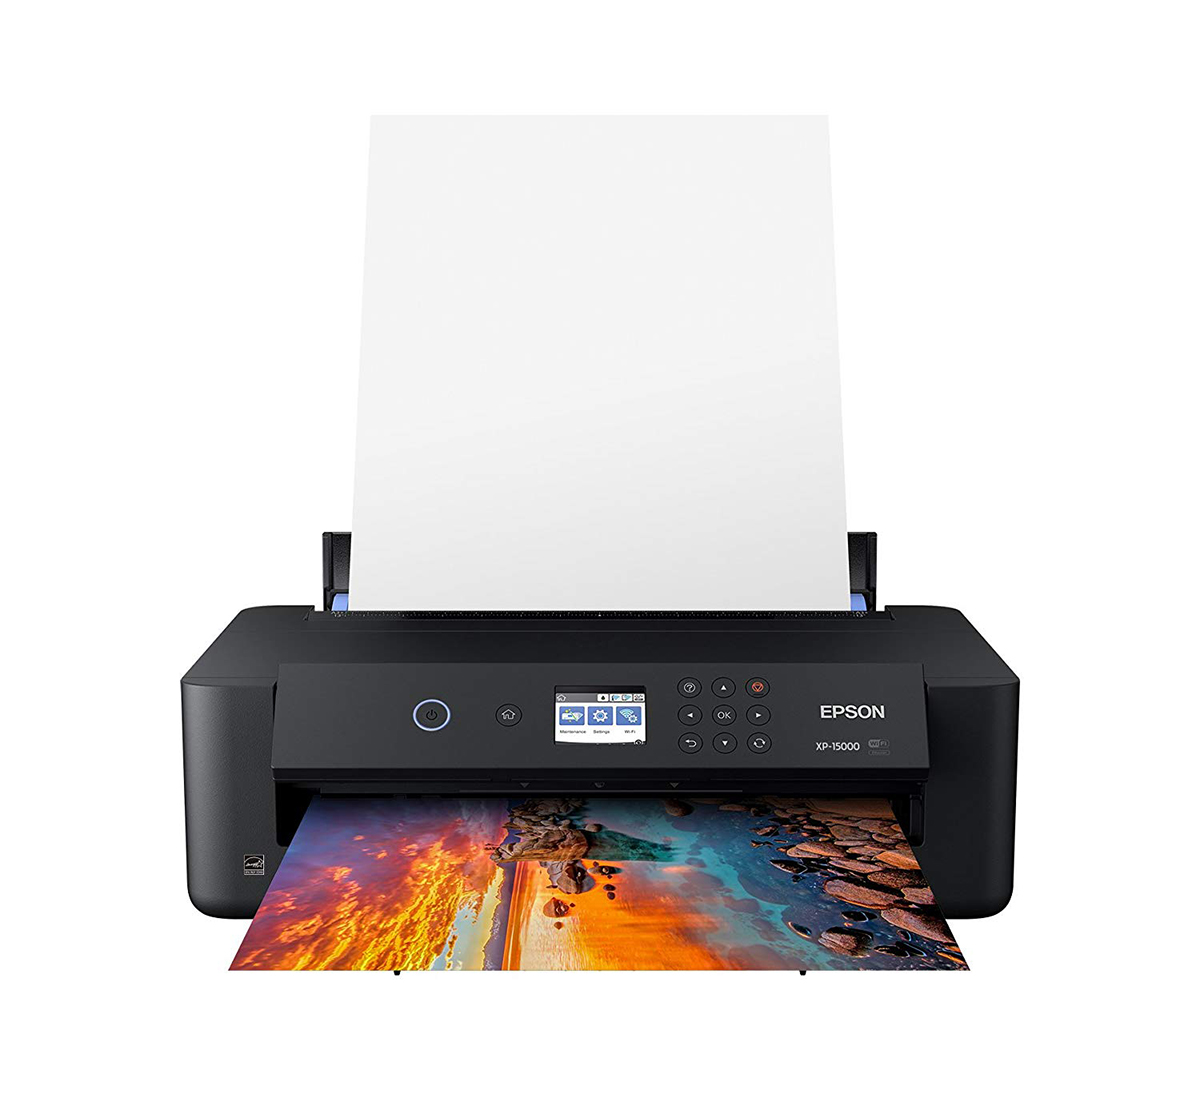 "EPSON Expression Photo HD XP-15000 - This printer has served me very well. When combined with premium Epson paper and archival ink cartridges, it produces some seriously gorgeous prints. It's relatively cheap, too. And it prints 13"" wide borderless images!"